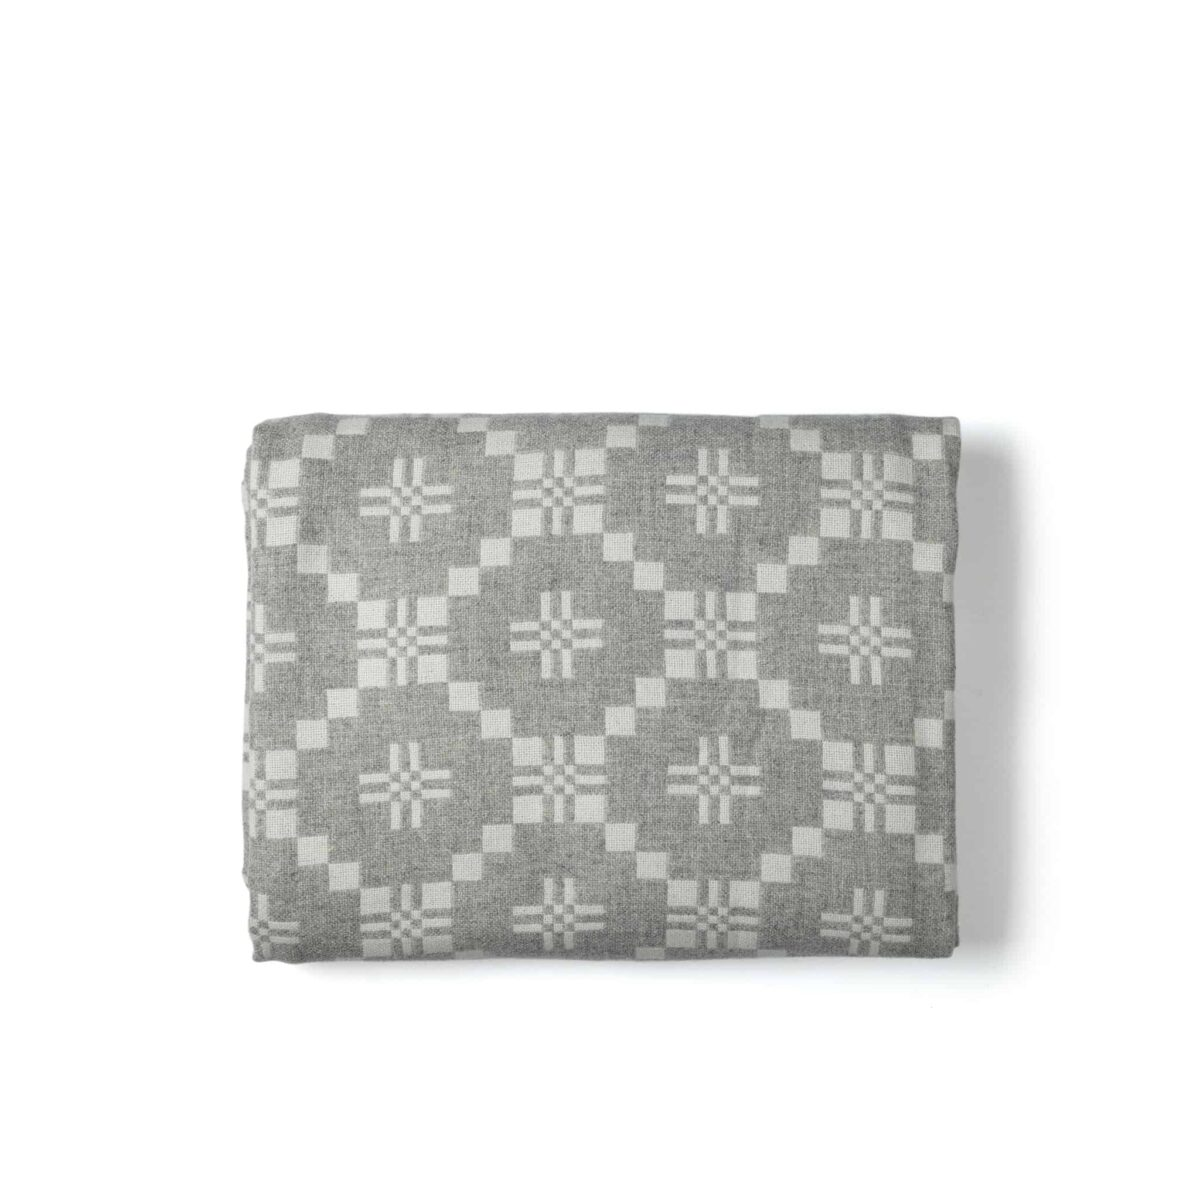 melin-t-st-davids-cross-blanket-grey-another-country-002